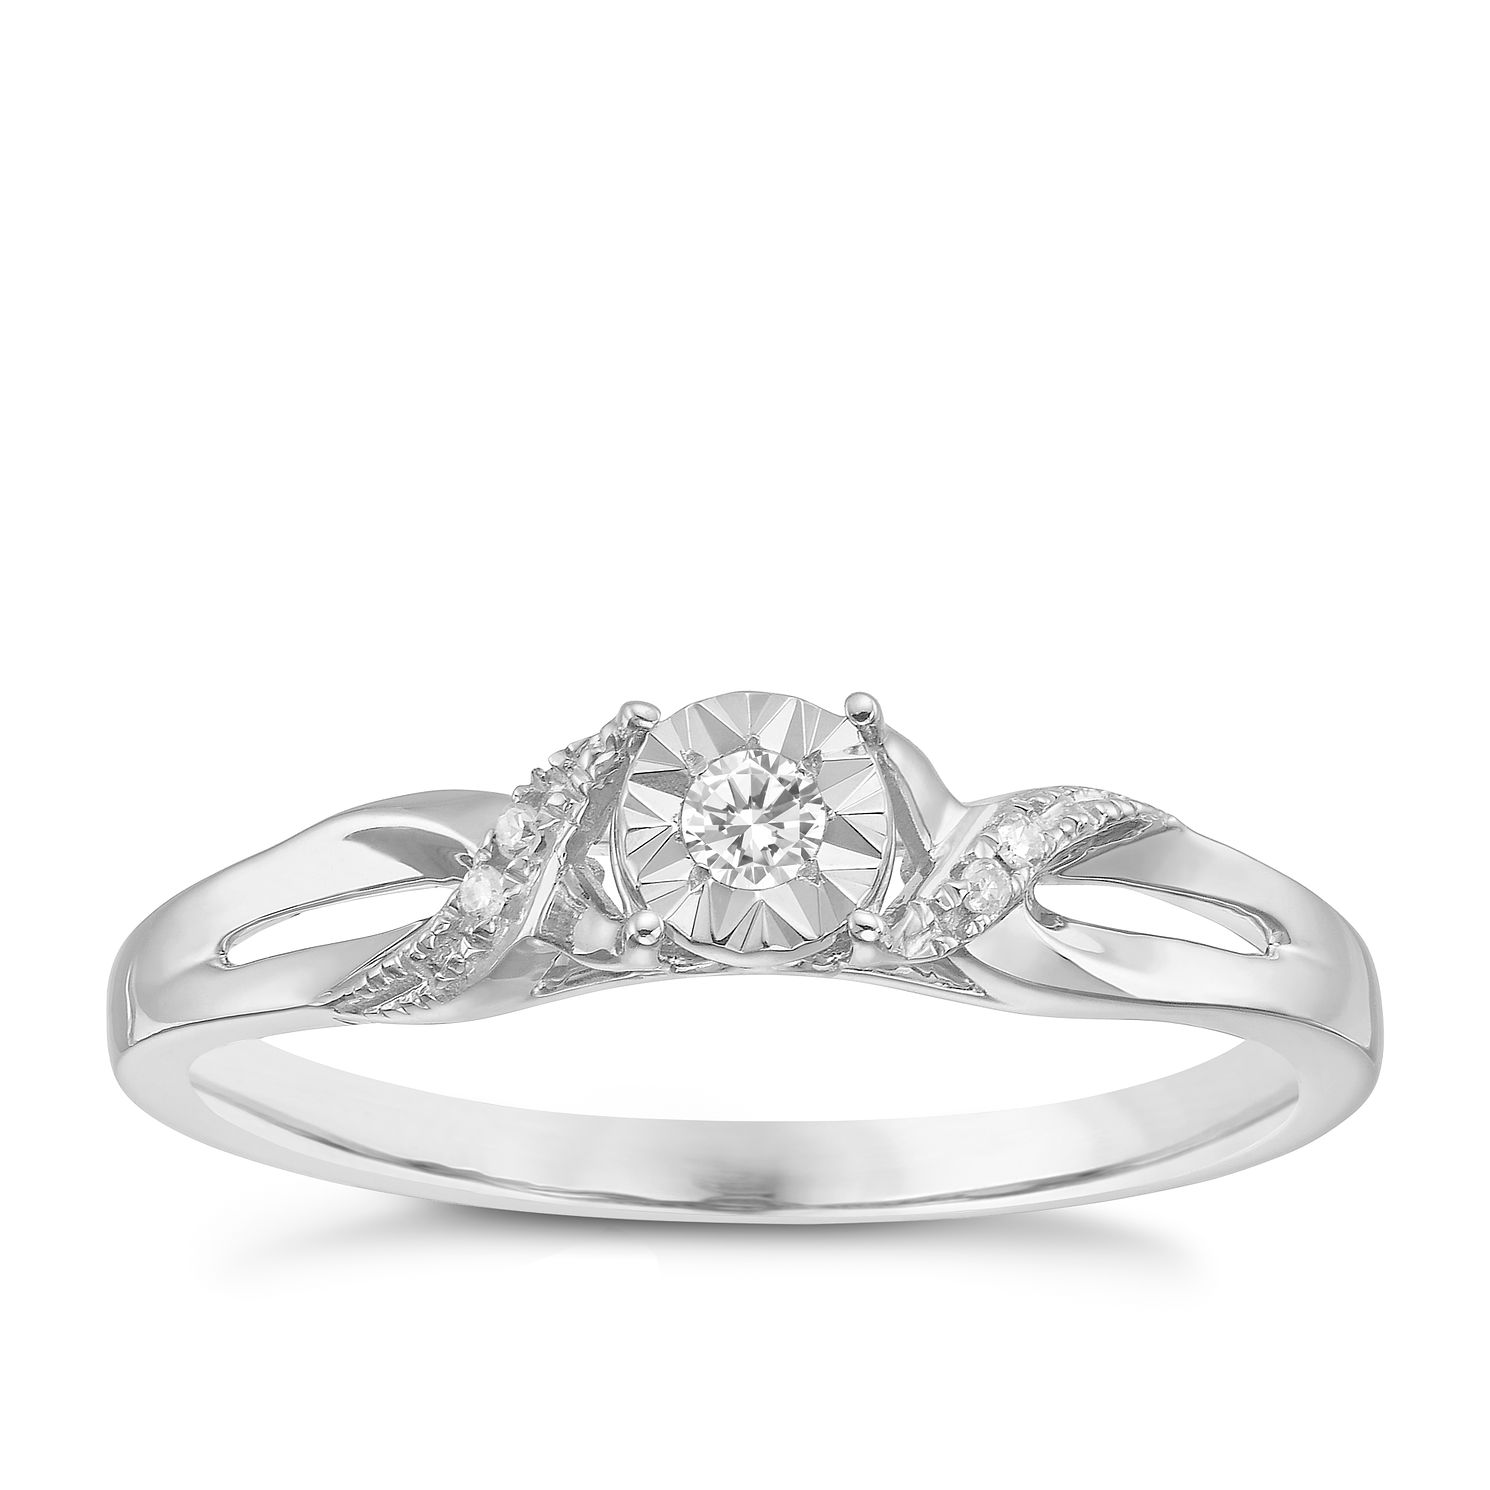 9ct White Gold Diamond Solitaire Ring - Product number 3875520